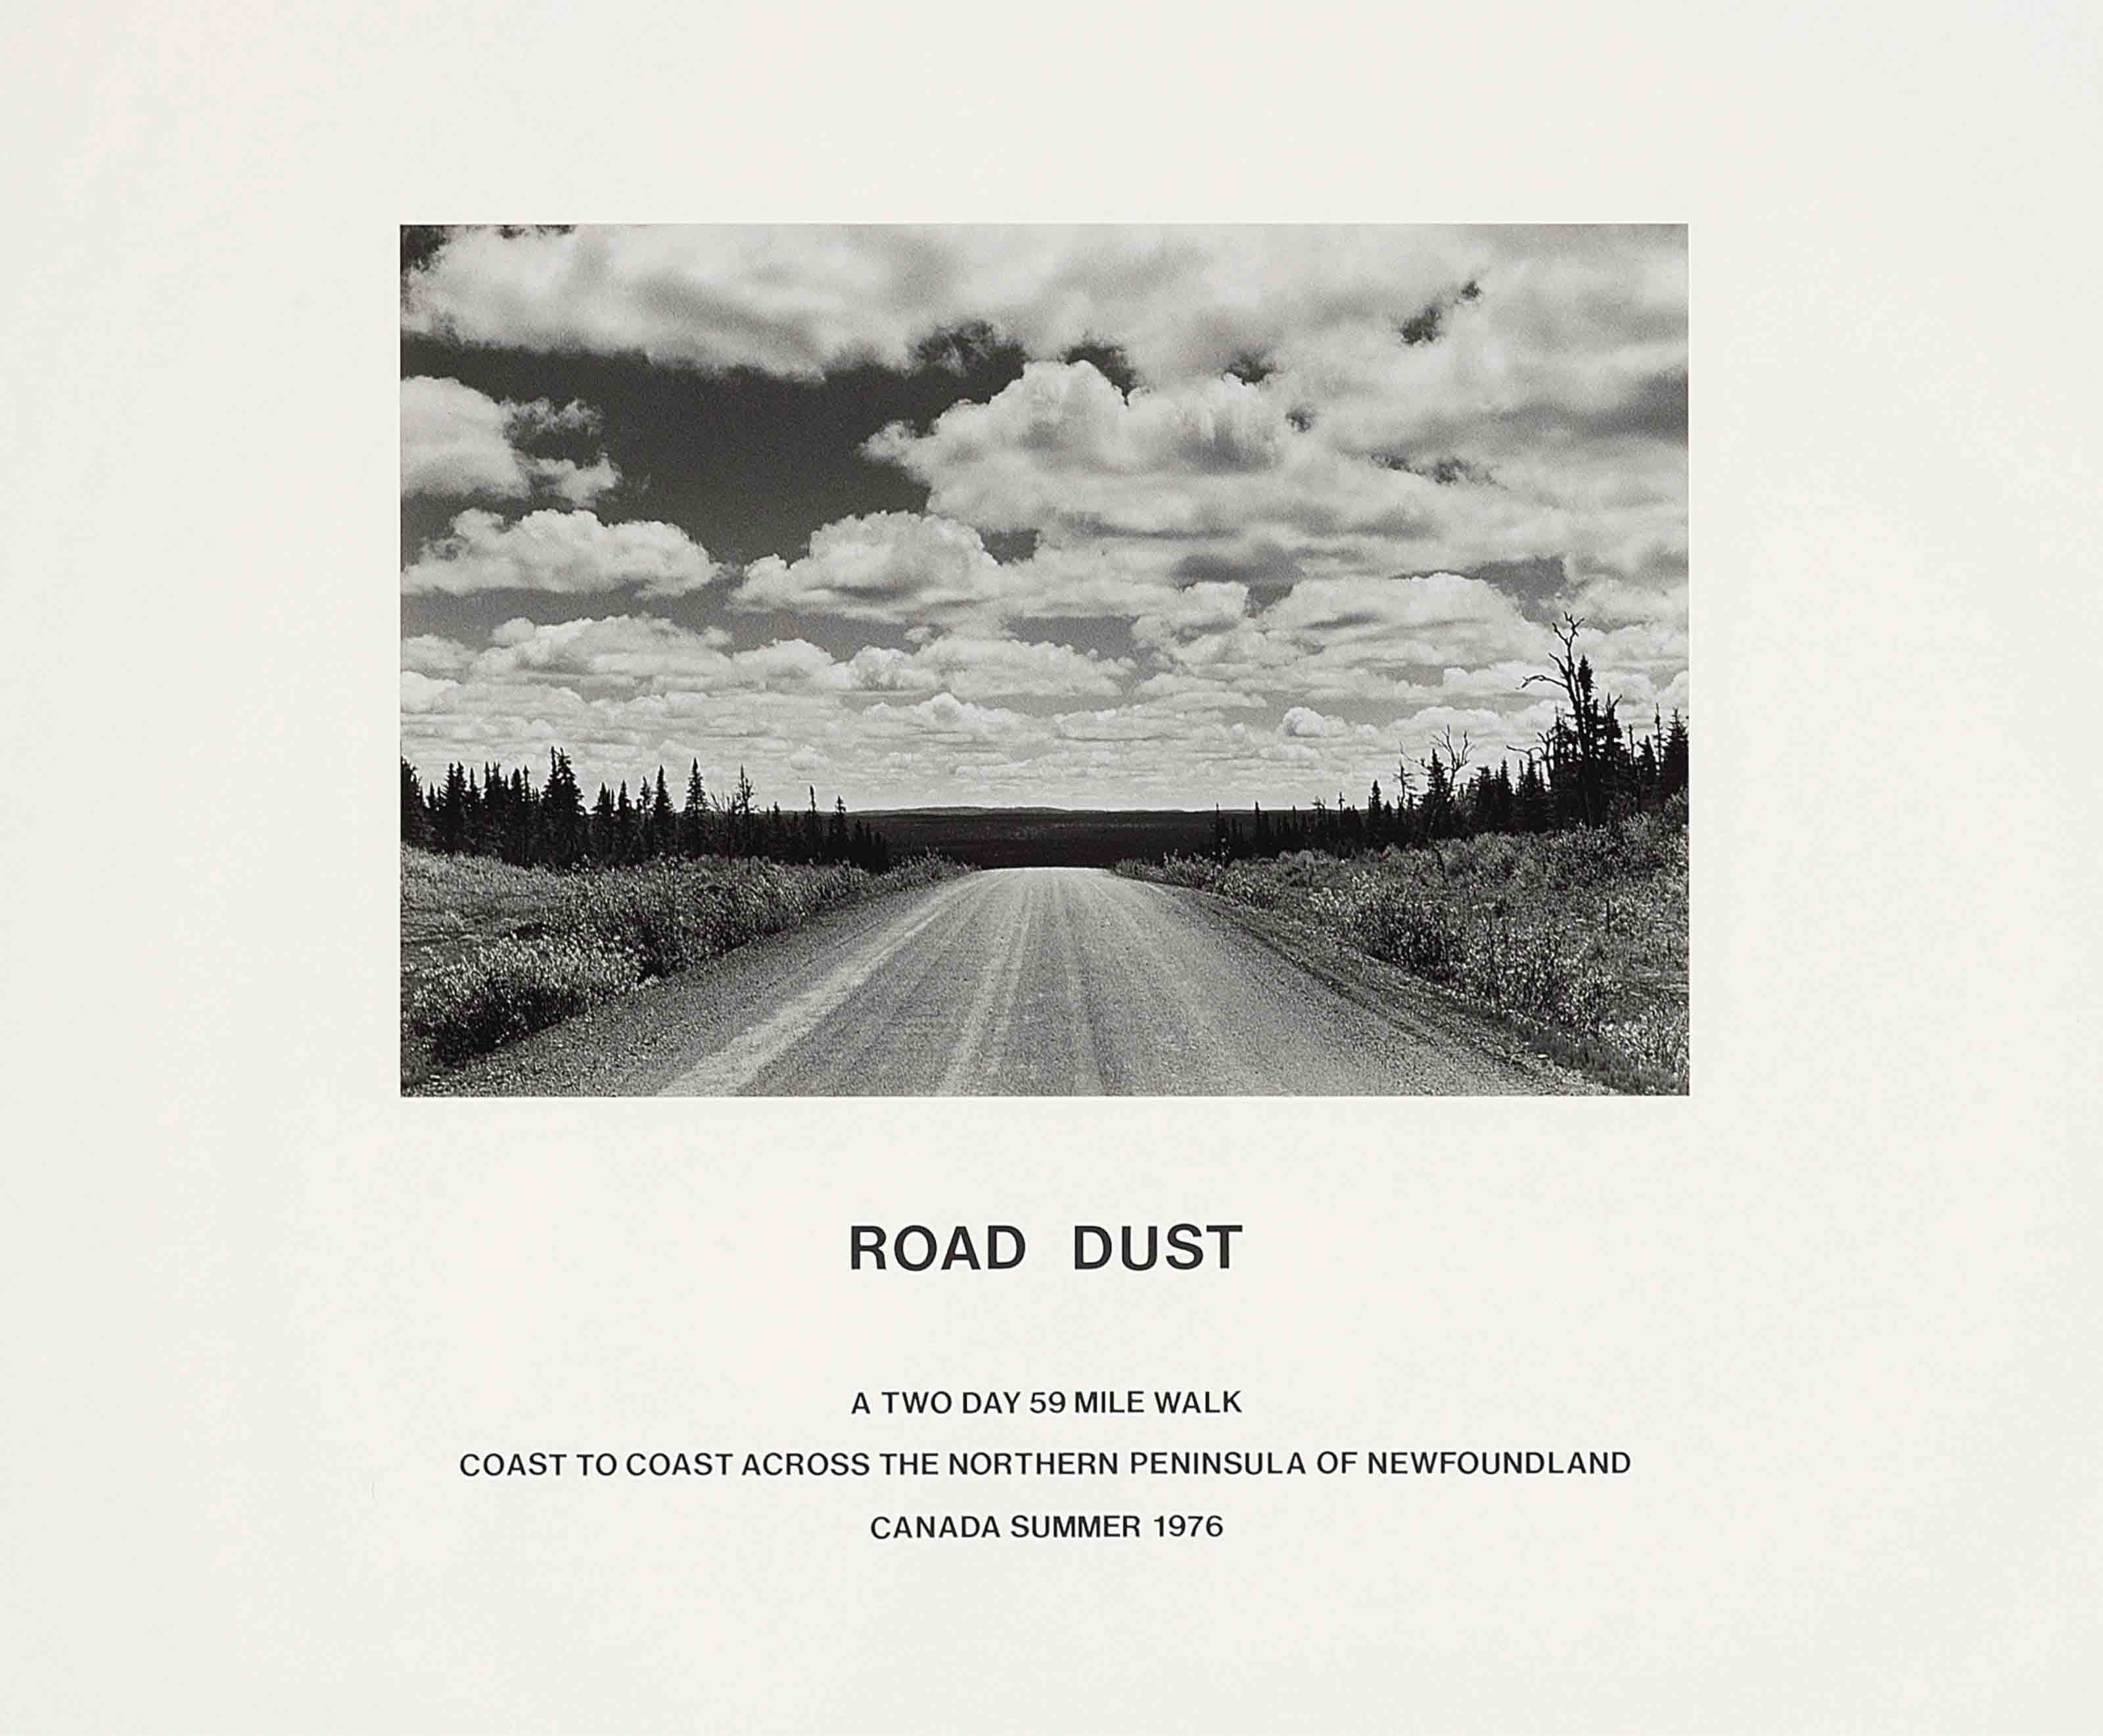 Road Dust